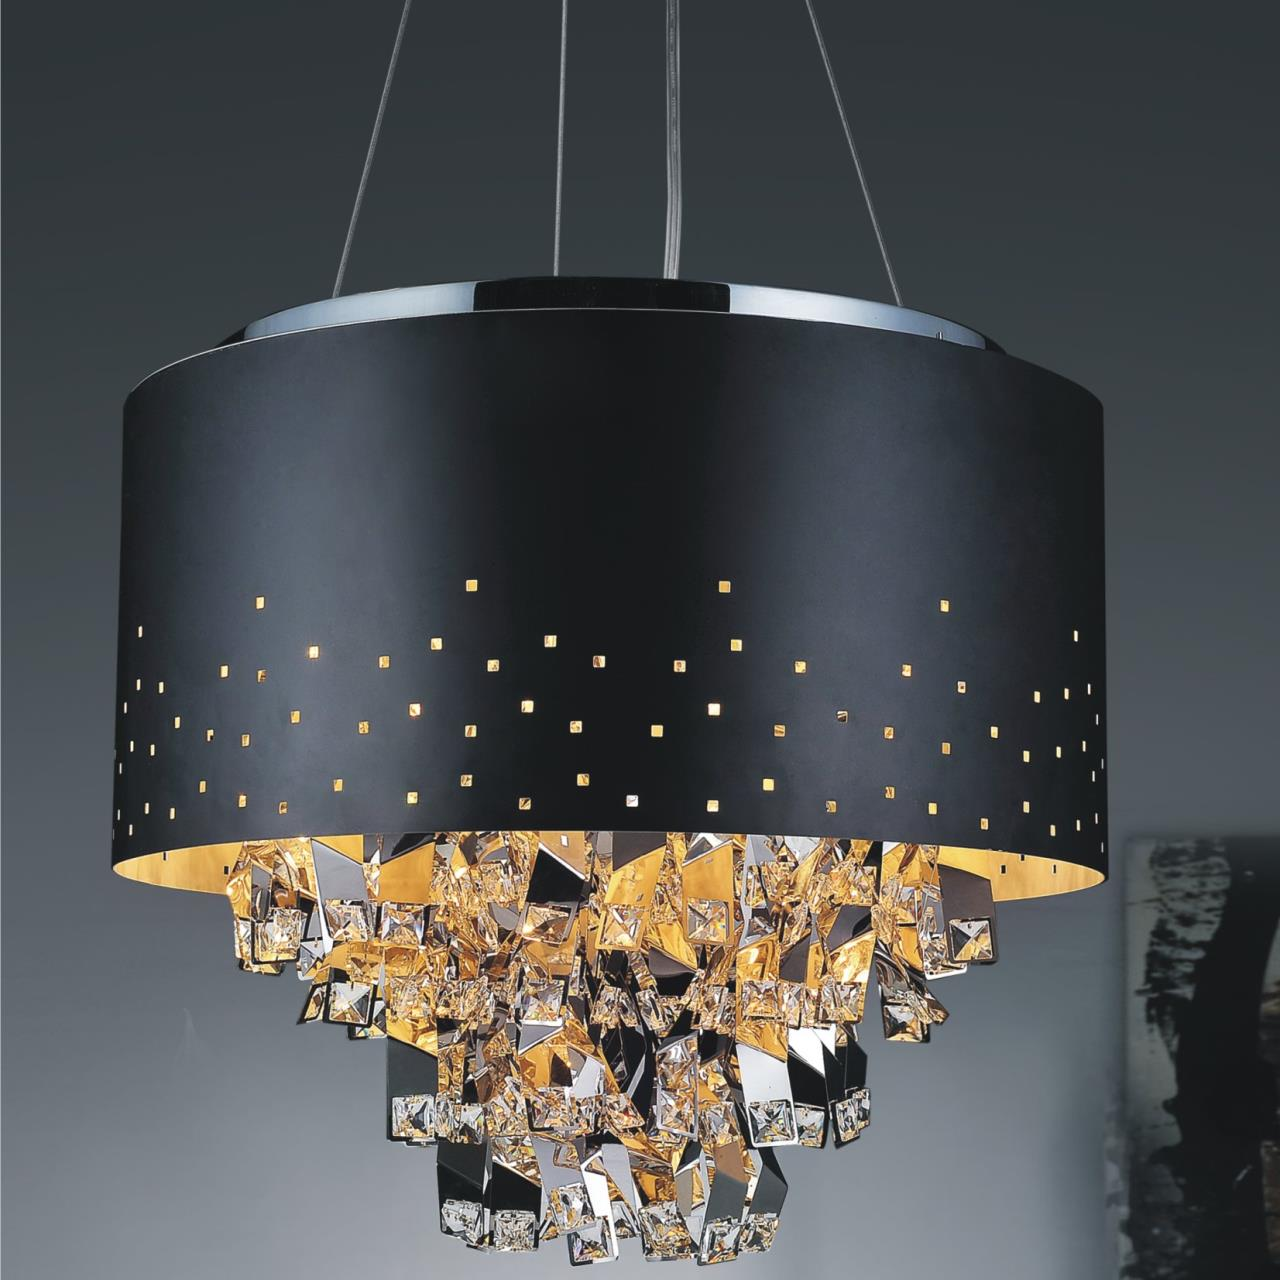 16-Inch-Black-Chandelier.jpeg